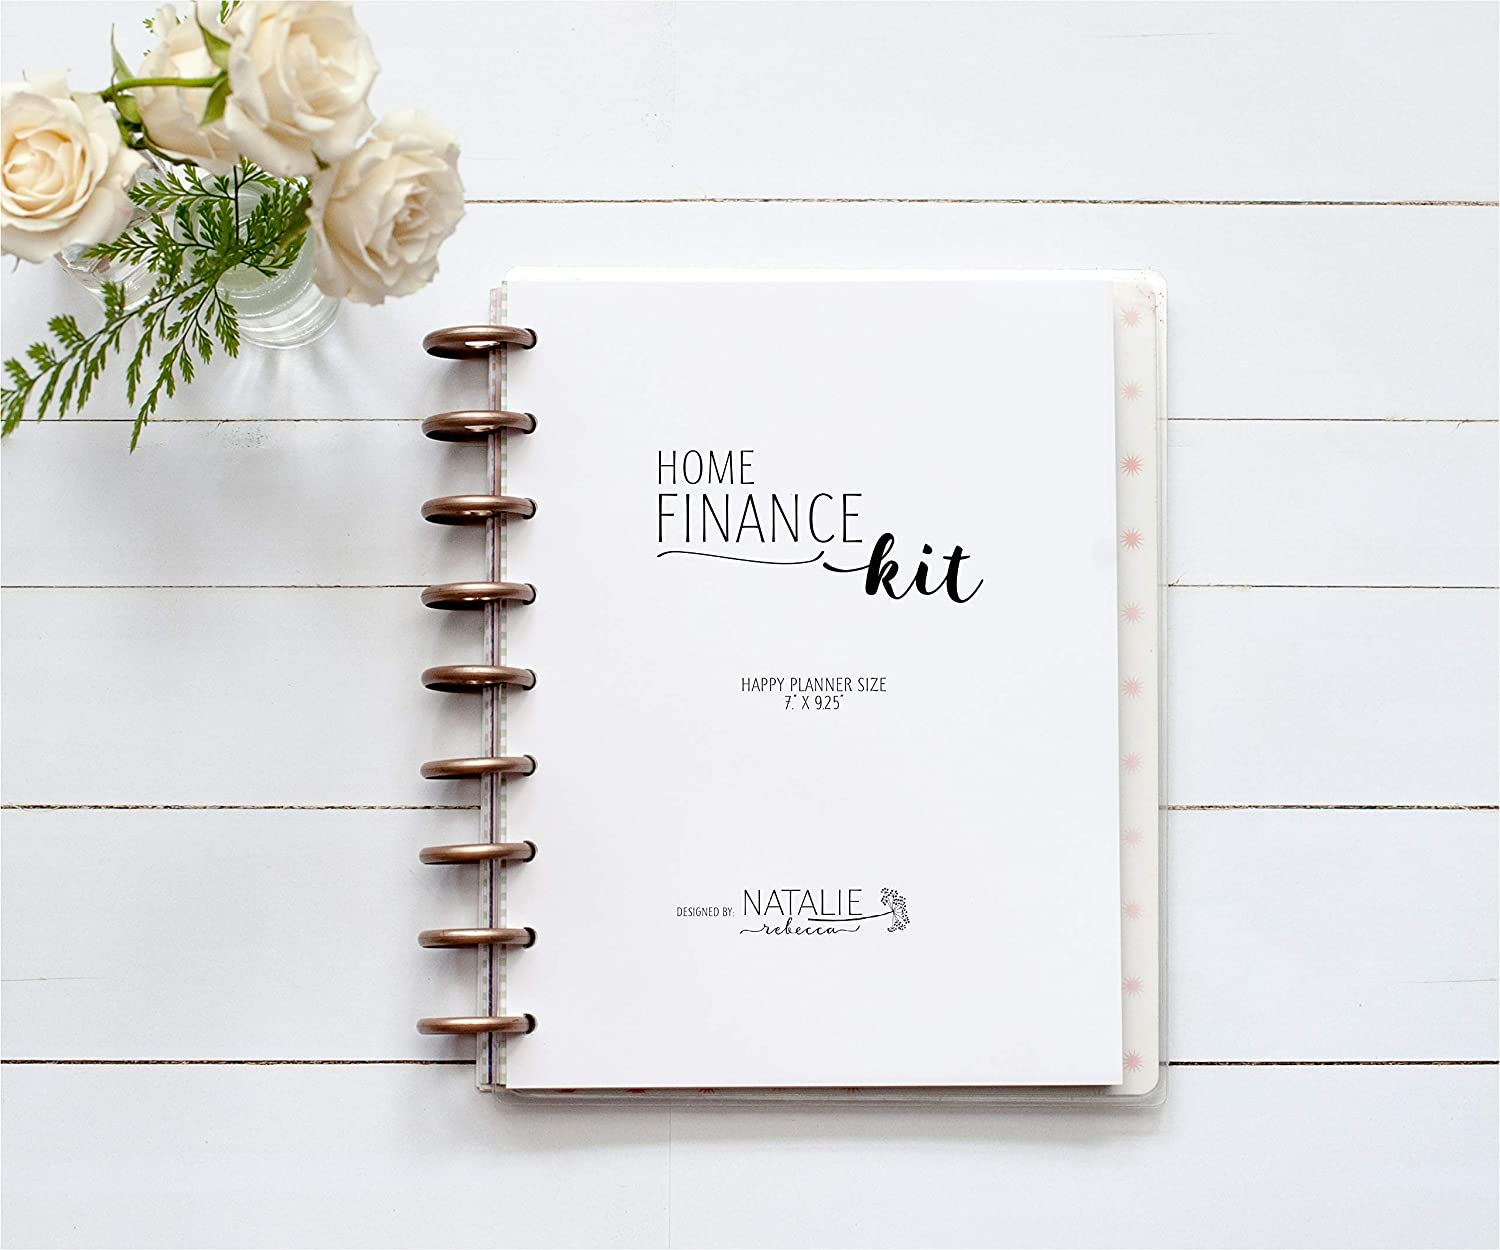 Home Finance Kit for the Happy Planner, 9-Discs, 1 Year Supply, Budget, Expense Tracker, Debt Snowball, 7